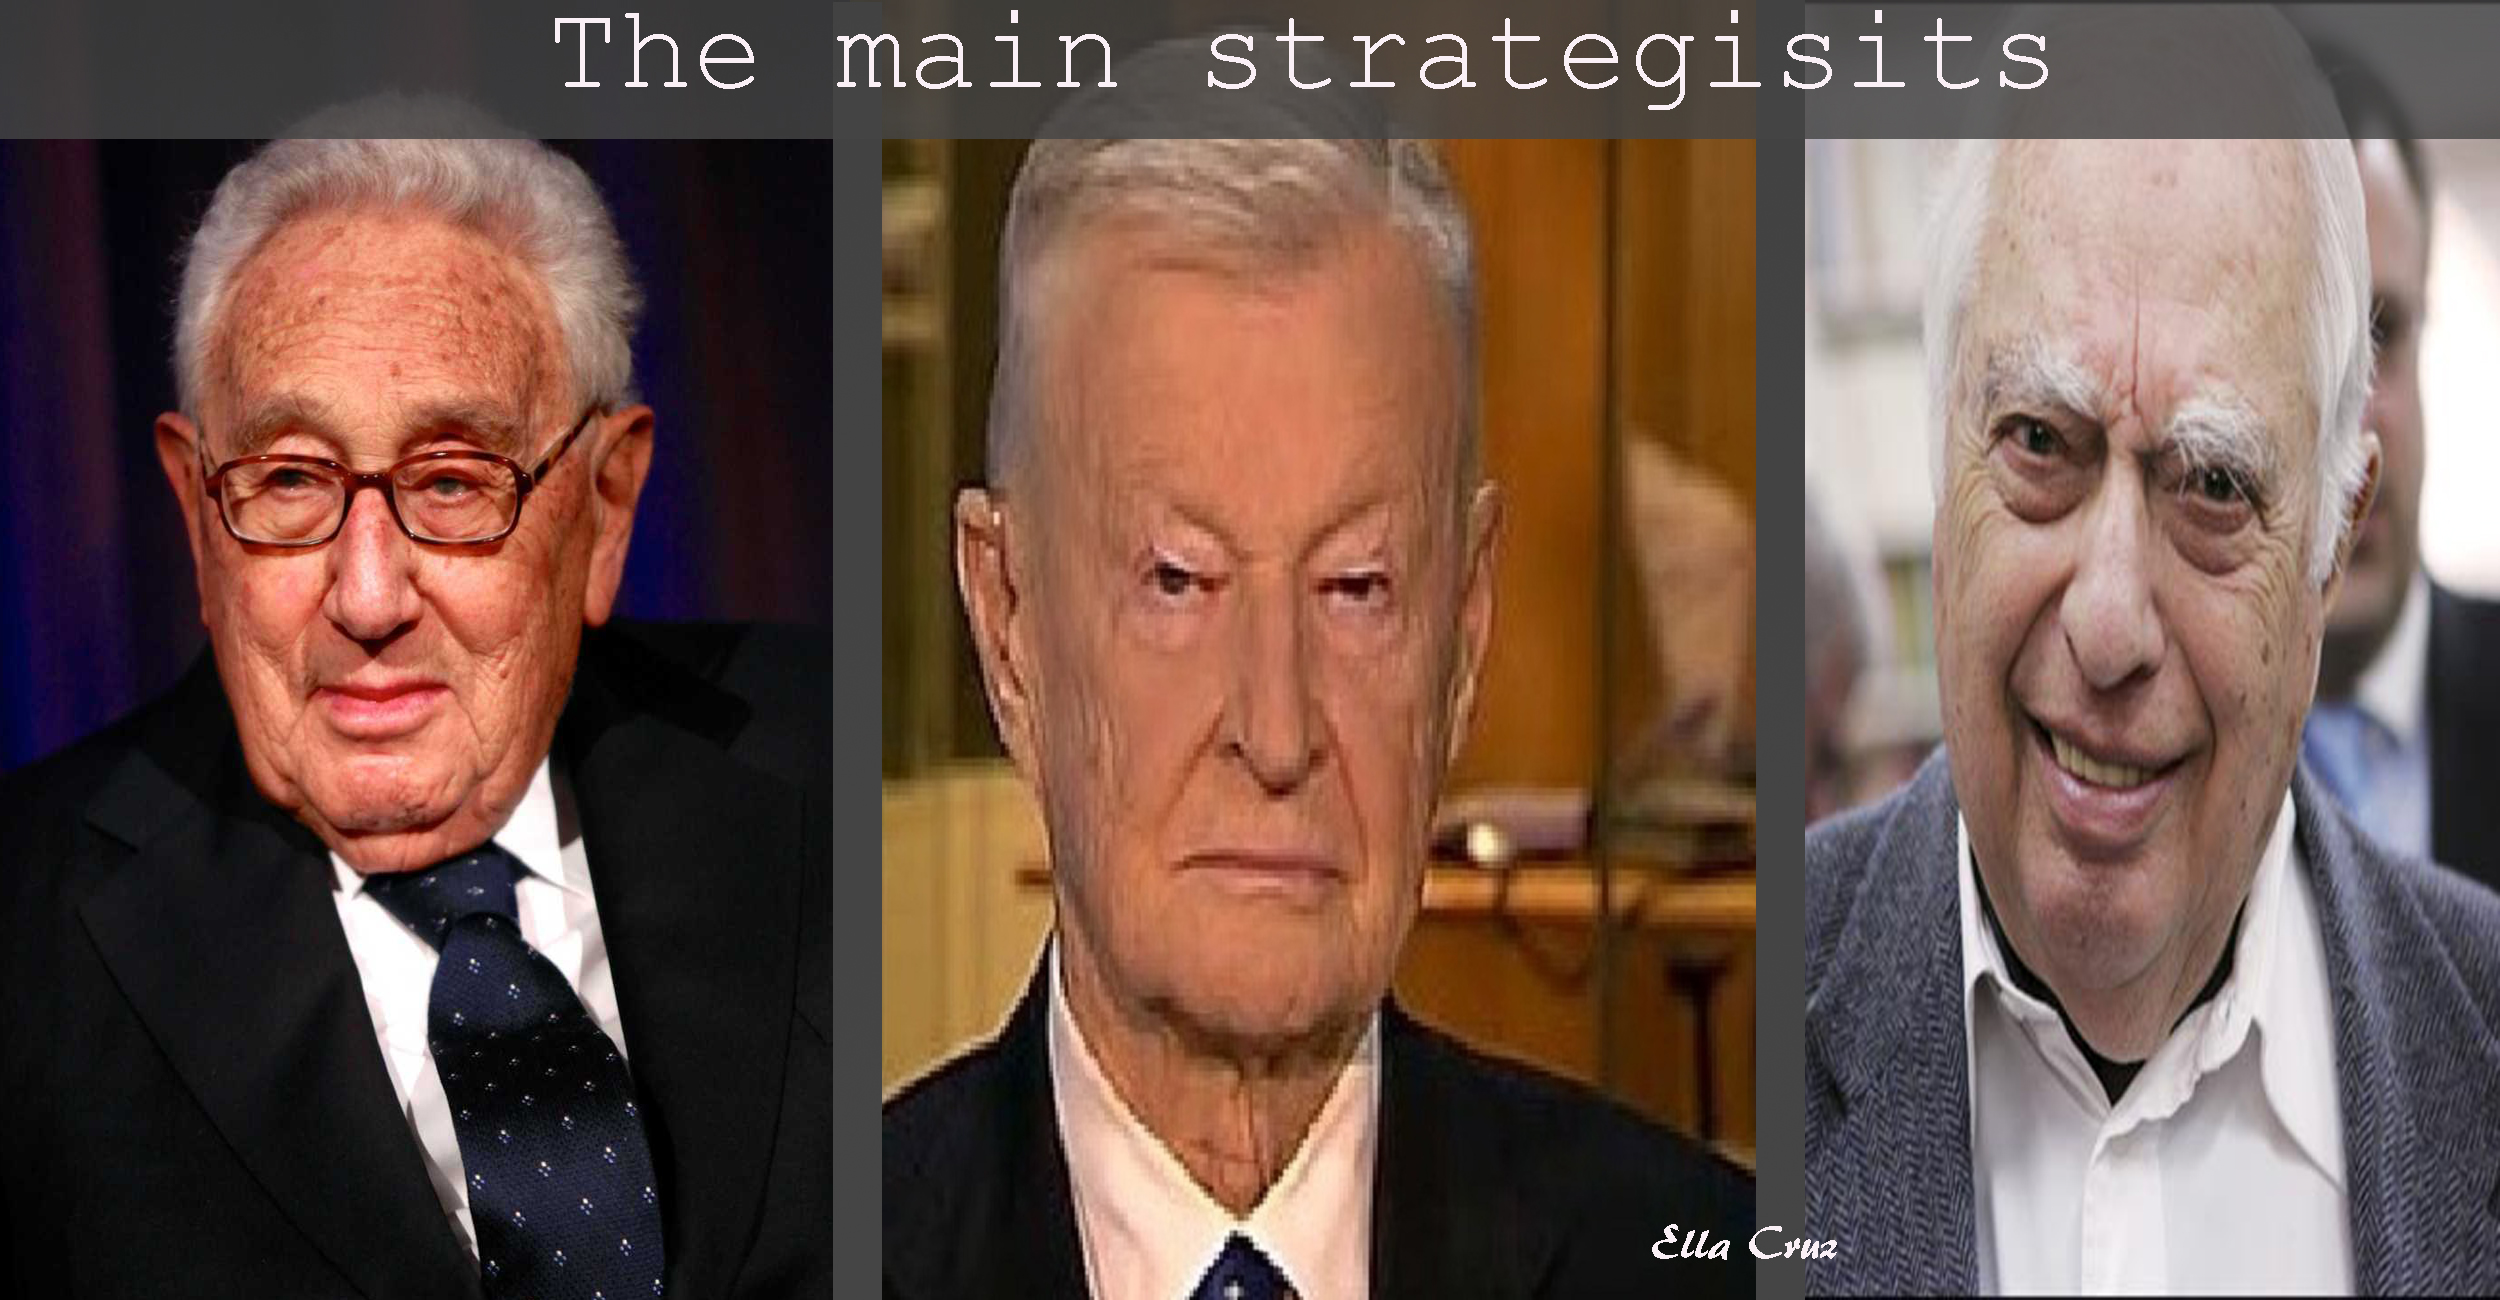 The Main Strategist Was Not Soros